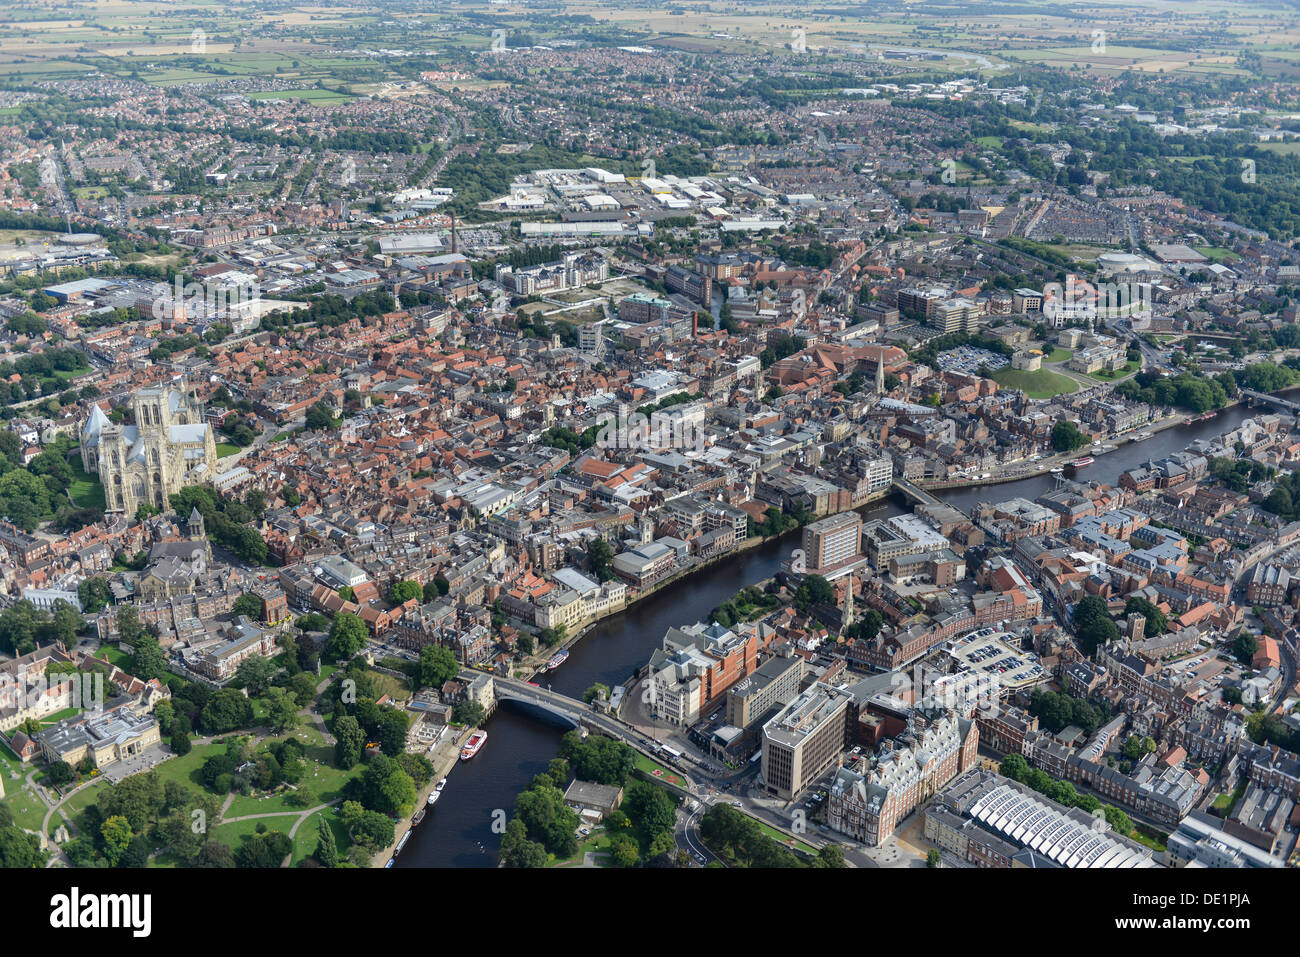 Aerial photograph of York City Centre with York Minster and the River Great Ouse - Stock Image